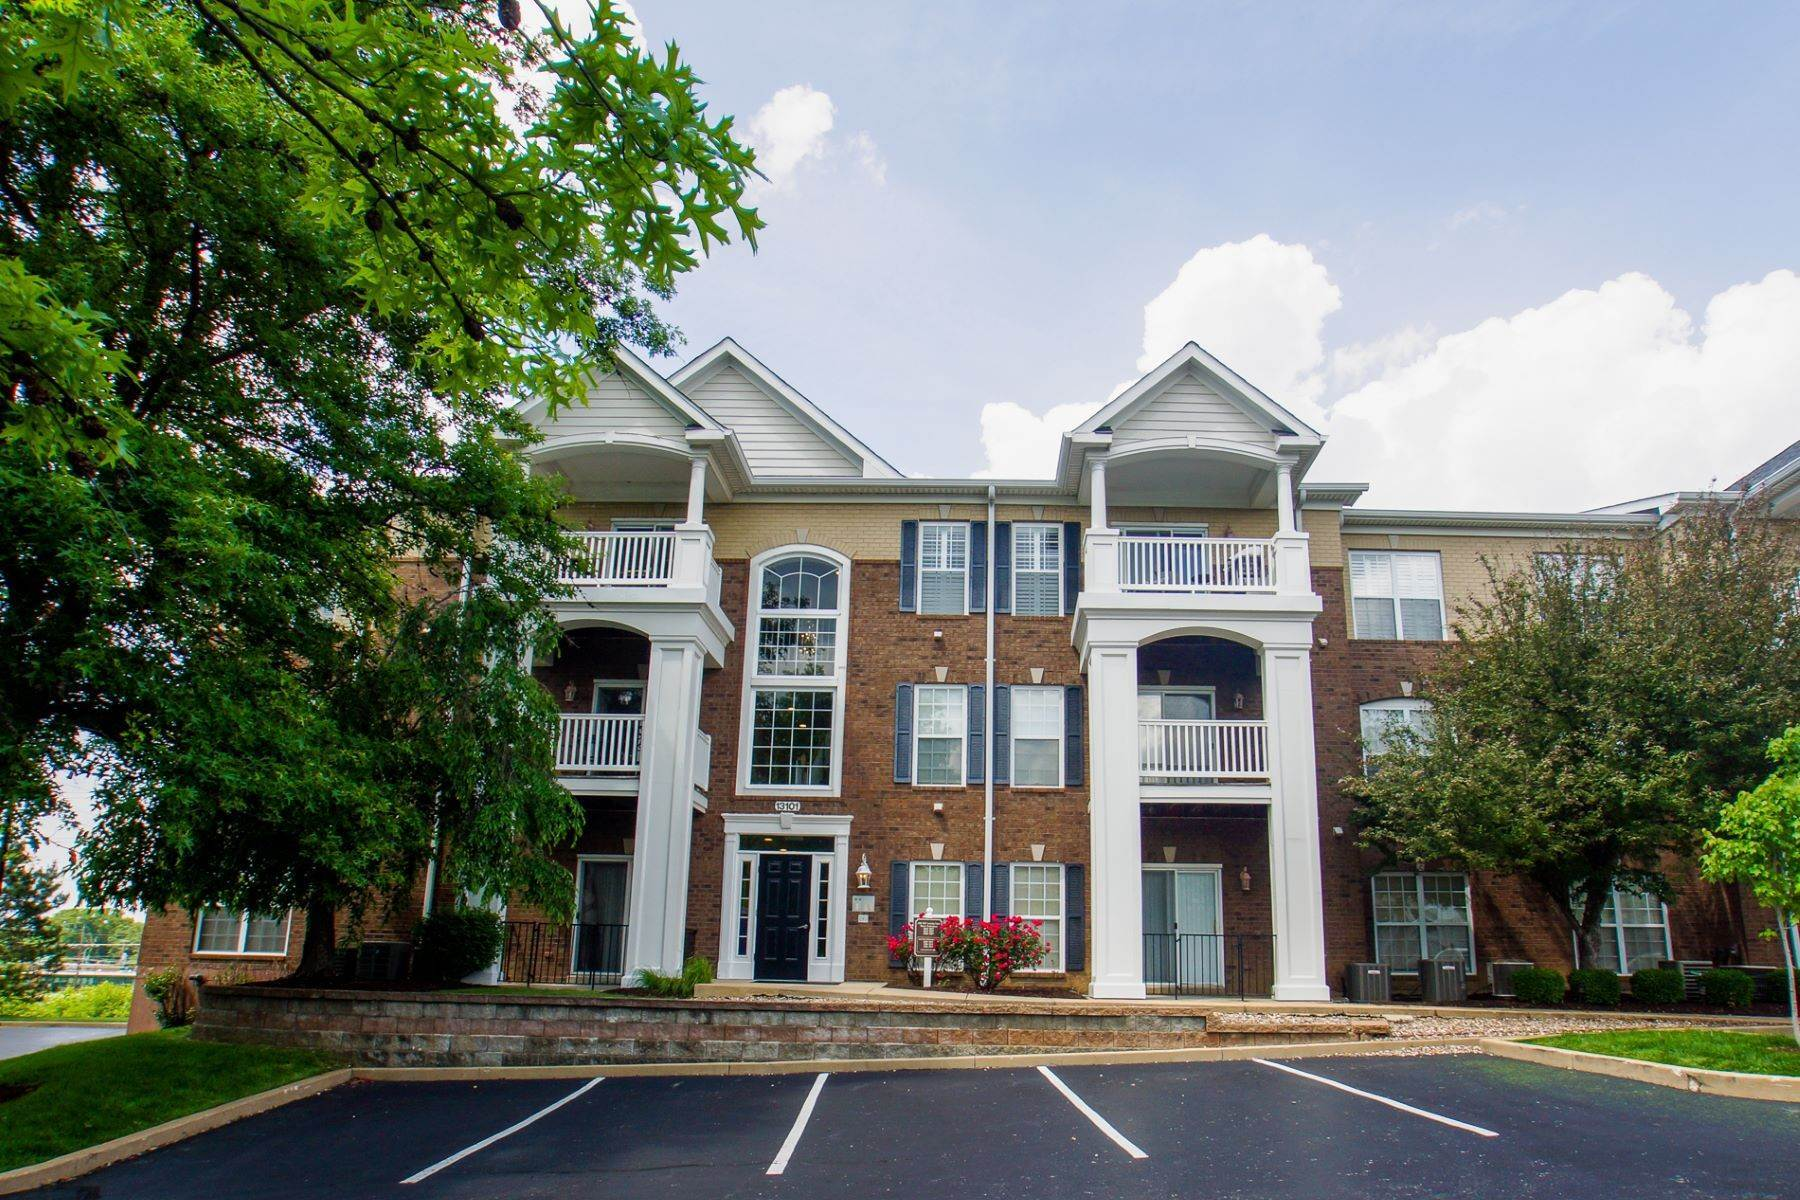 Condominiums at Lovely Creve Coeur Condo in a Gated Community 13101 Mill Crossing Court #104 Creve Coeur, Missouri 63141 United States